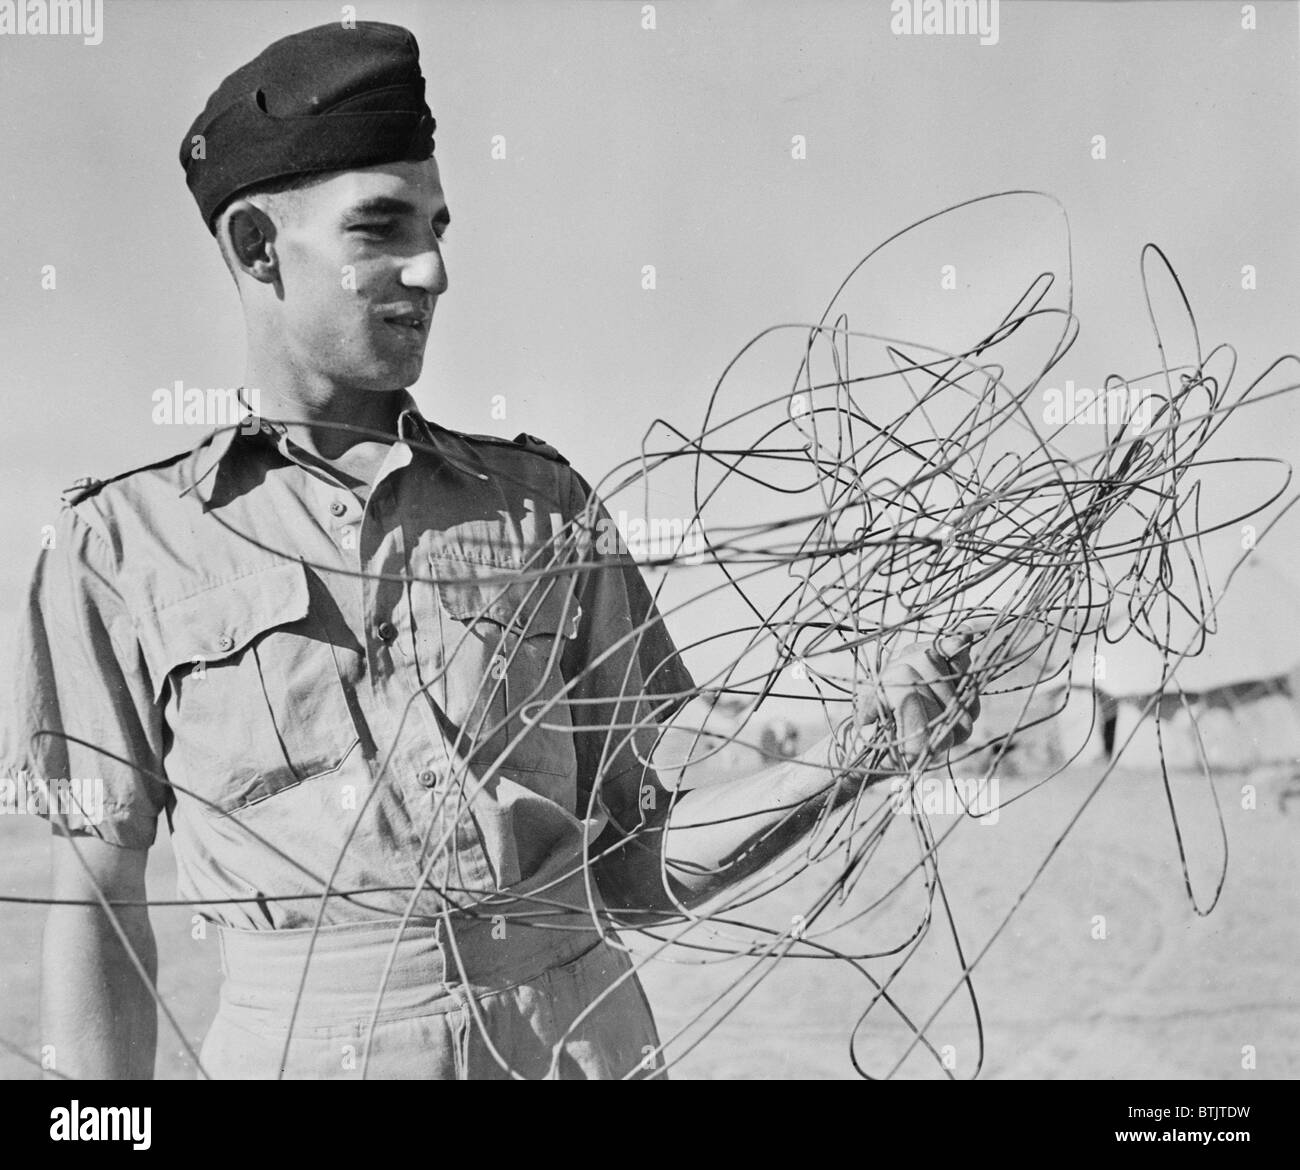 Royal Air Force Black and White Stock Photos & Images - Alamy